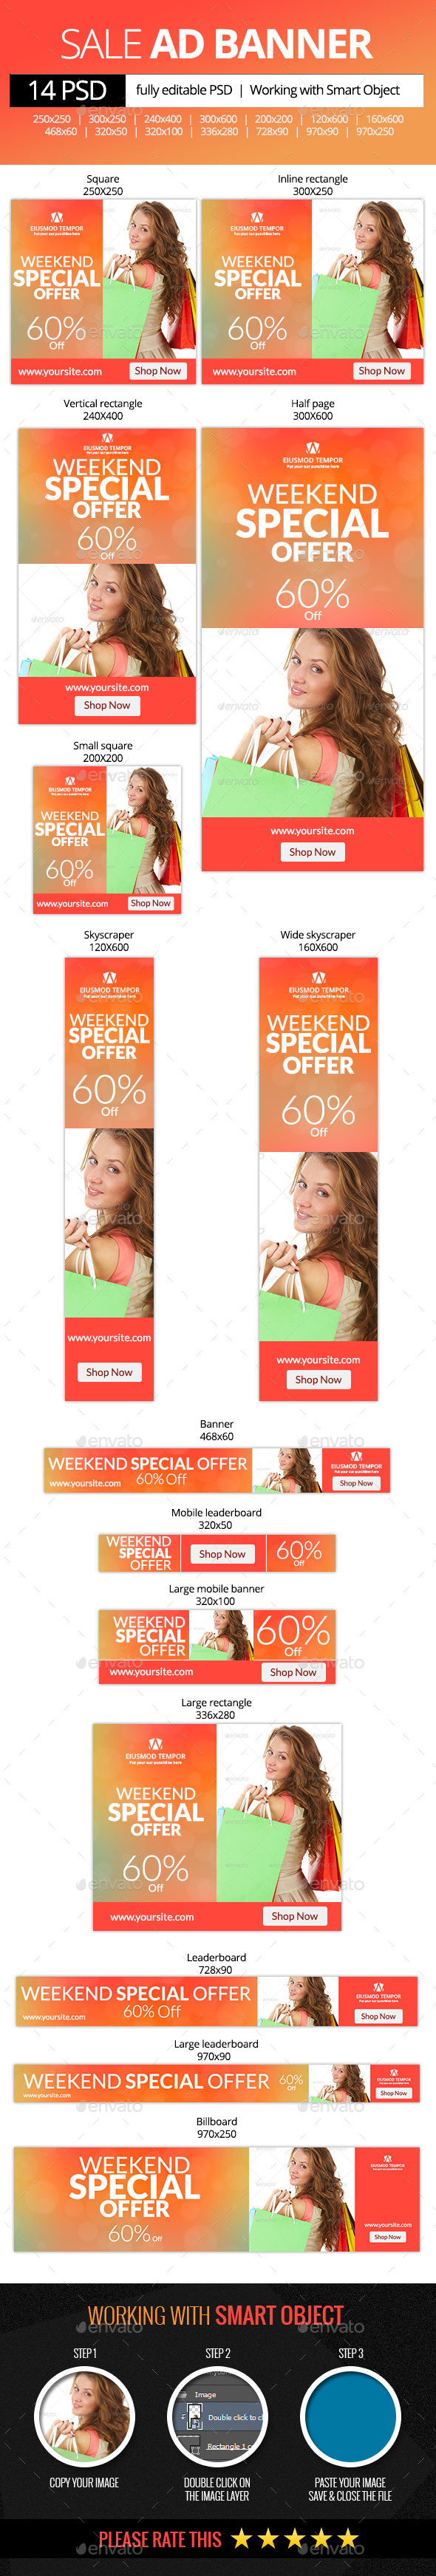 Weekend Special Offer Web Banners - Banners & Ads Web Elements